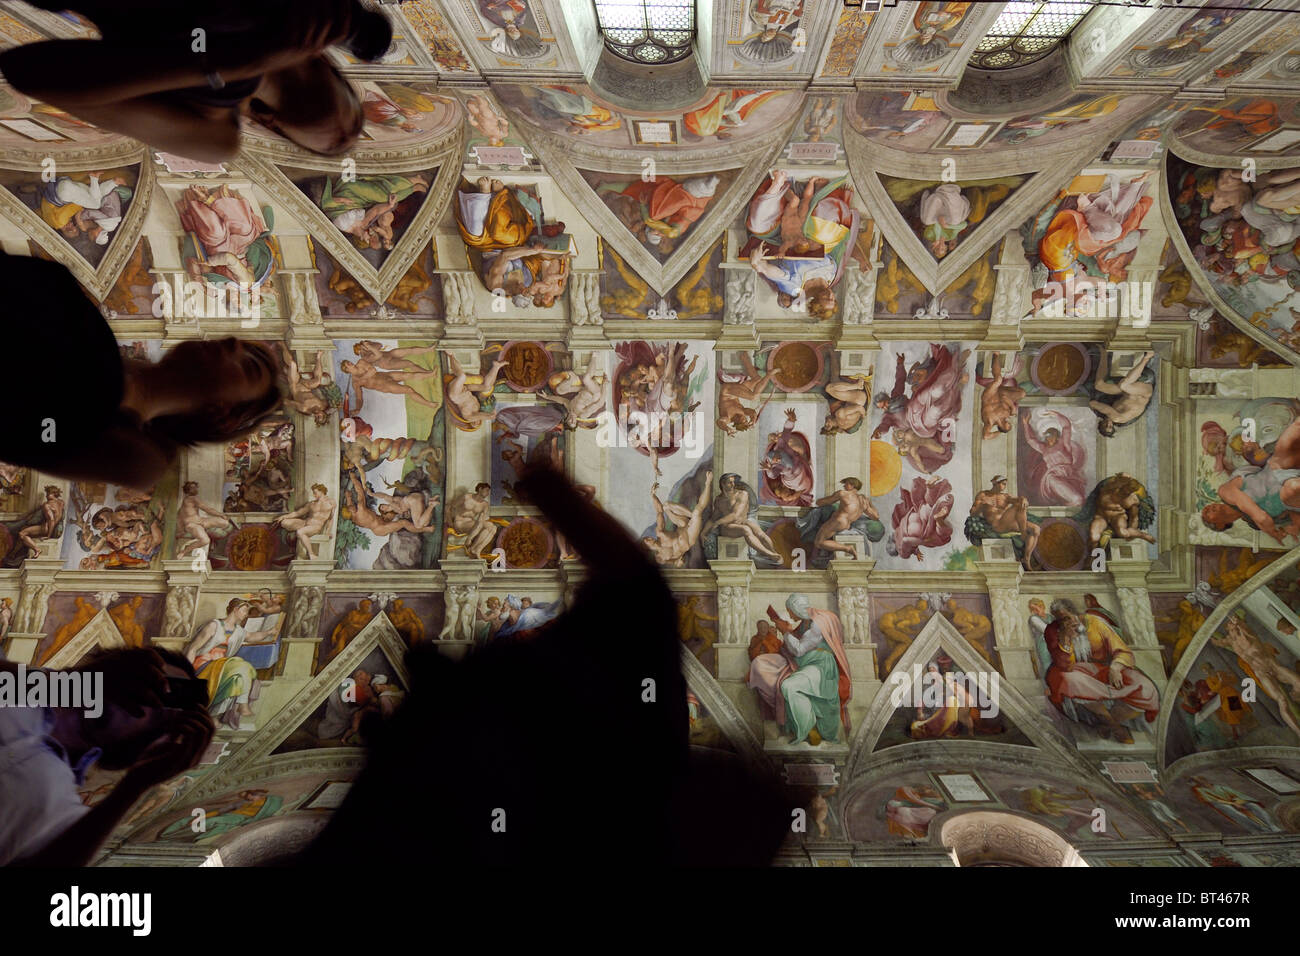 Rome. Italy. Tourists crowd the Sistine Chapel in the Vatican Museums. - Stock Image